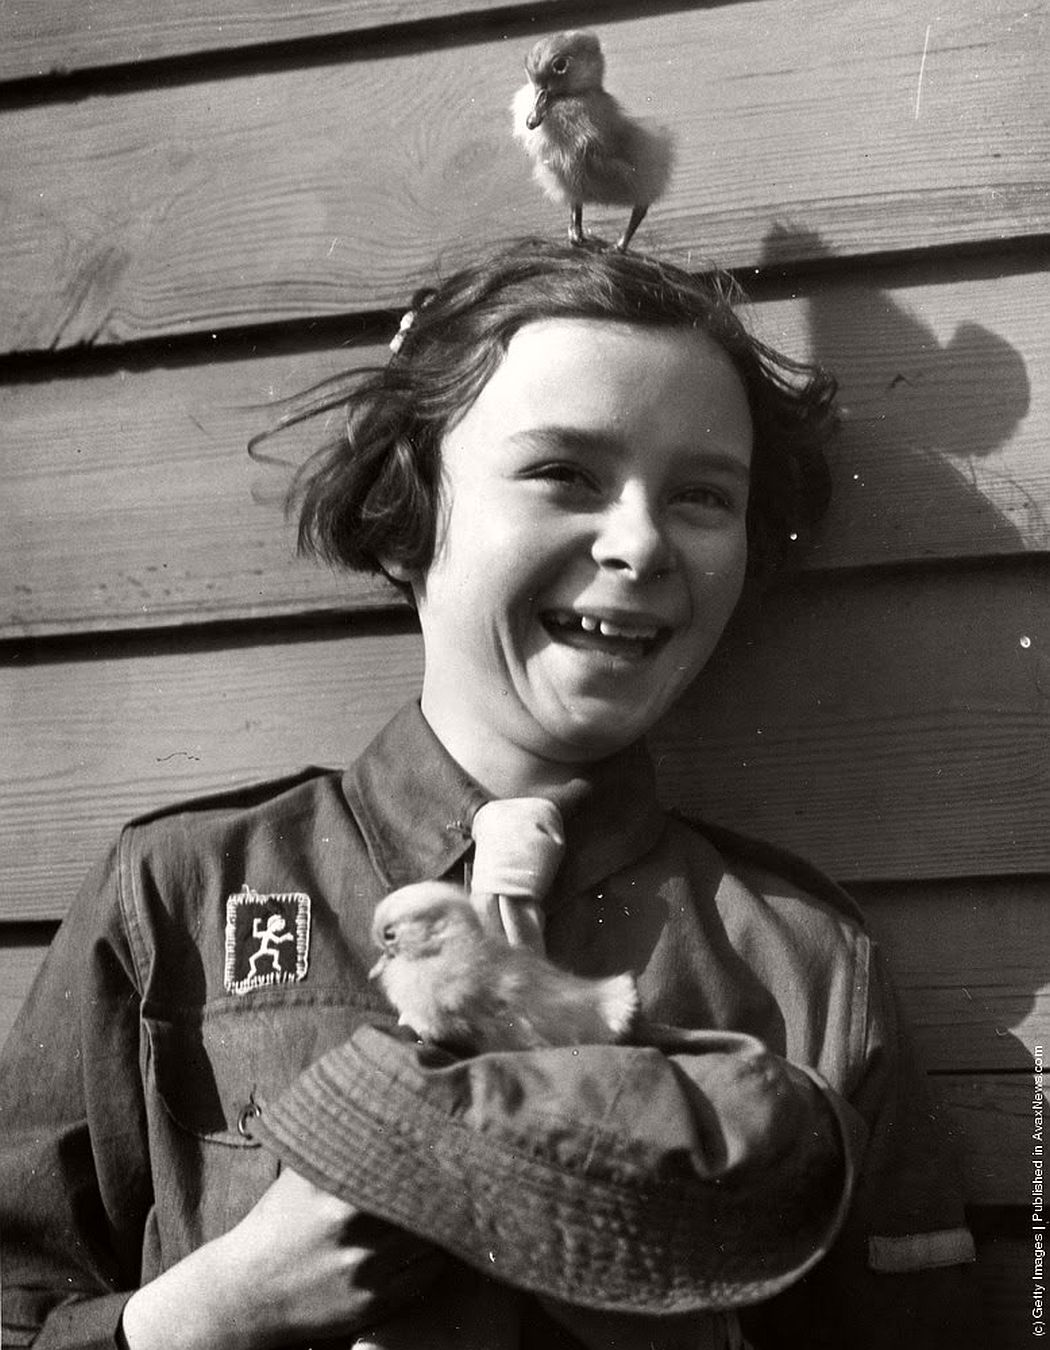 vintage-people-with-baby-animals-1930s-1960s-26